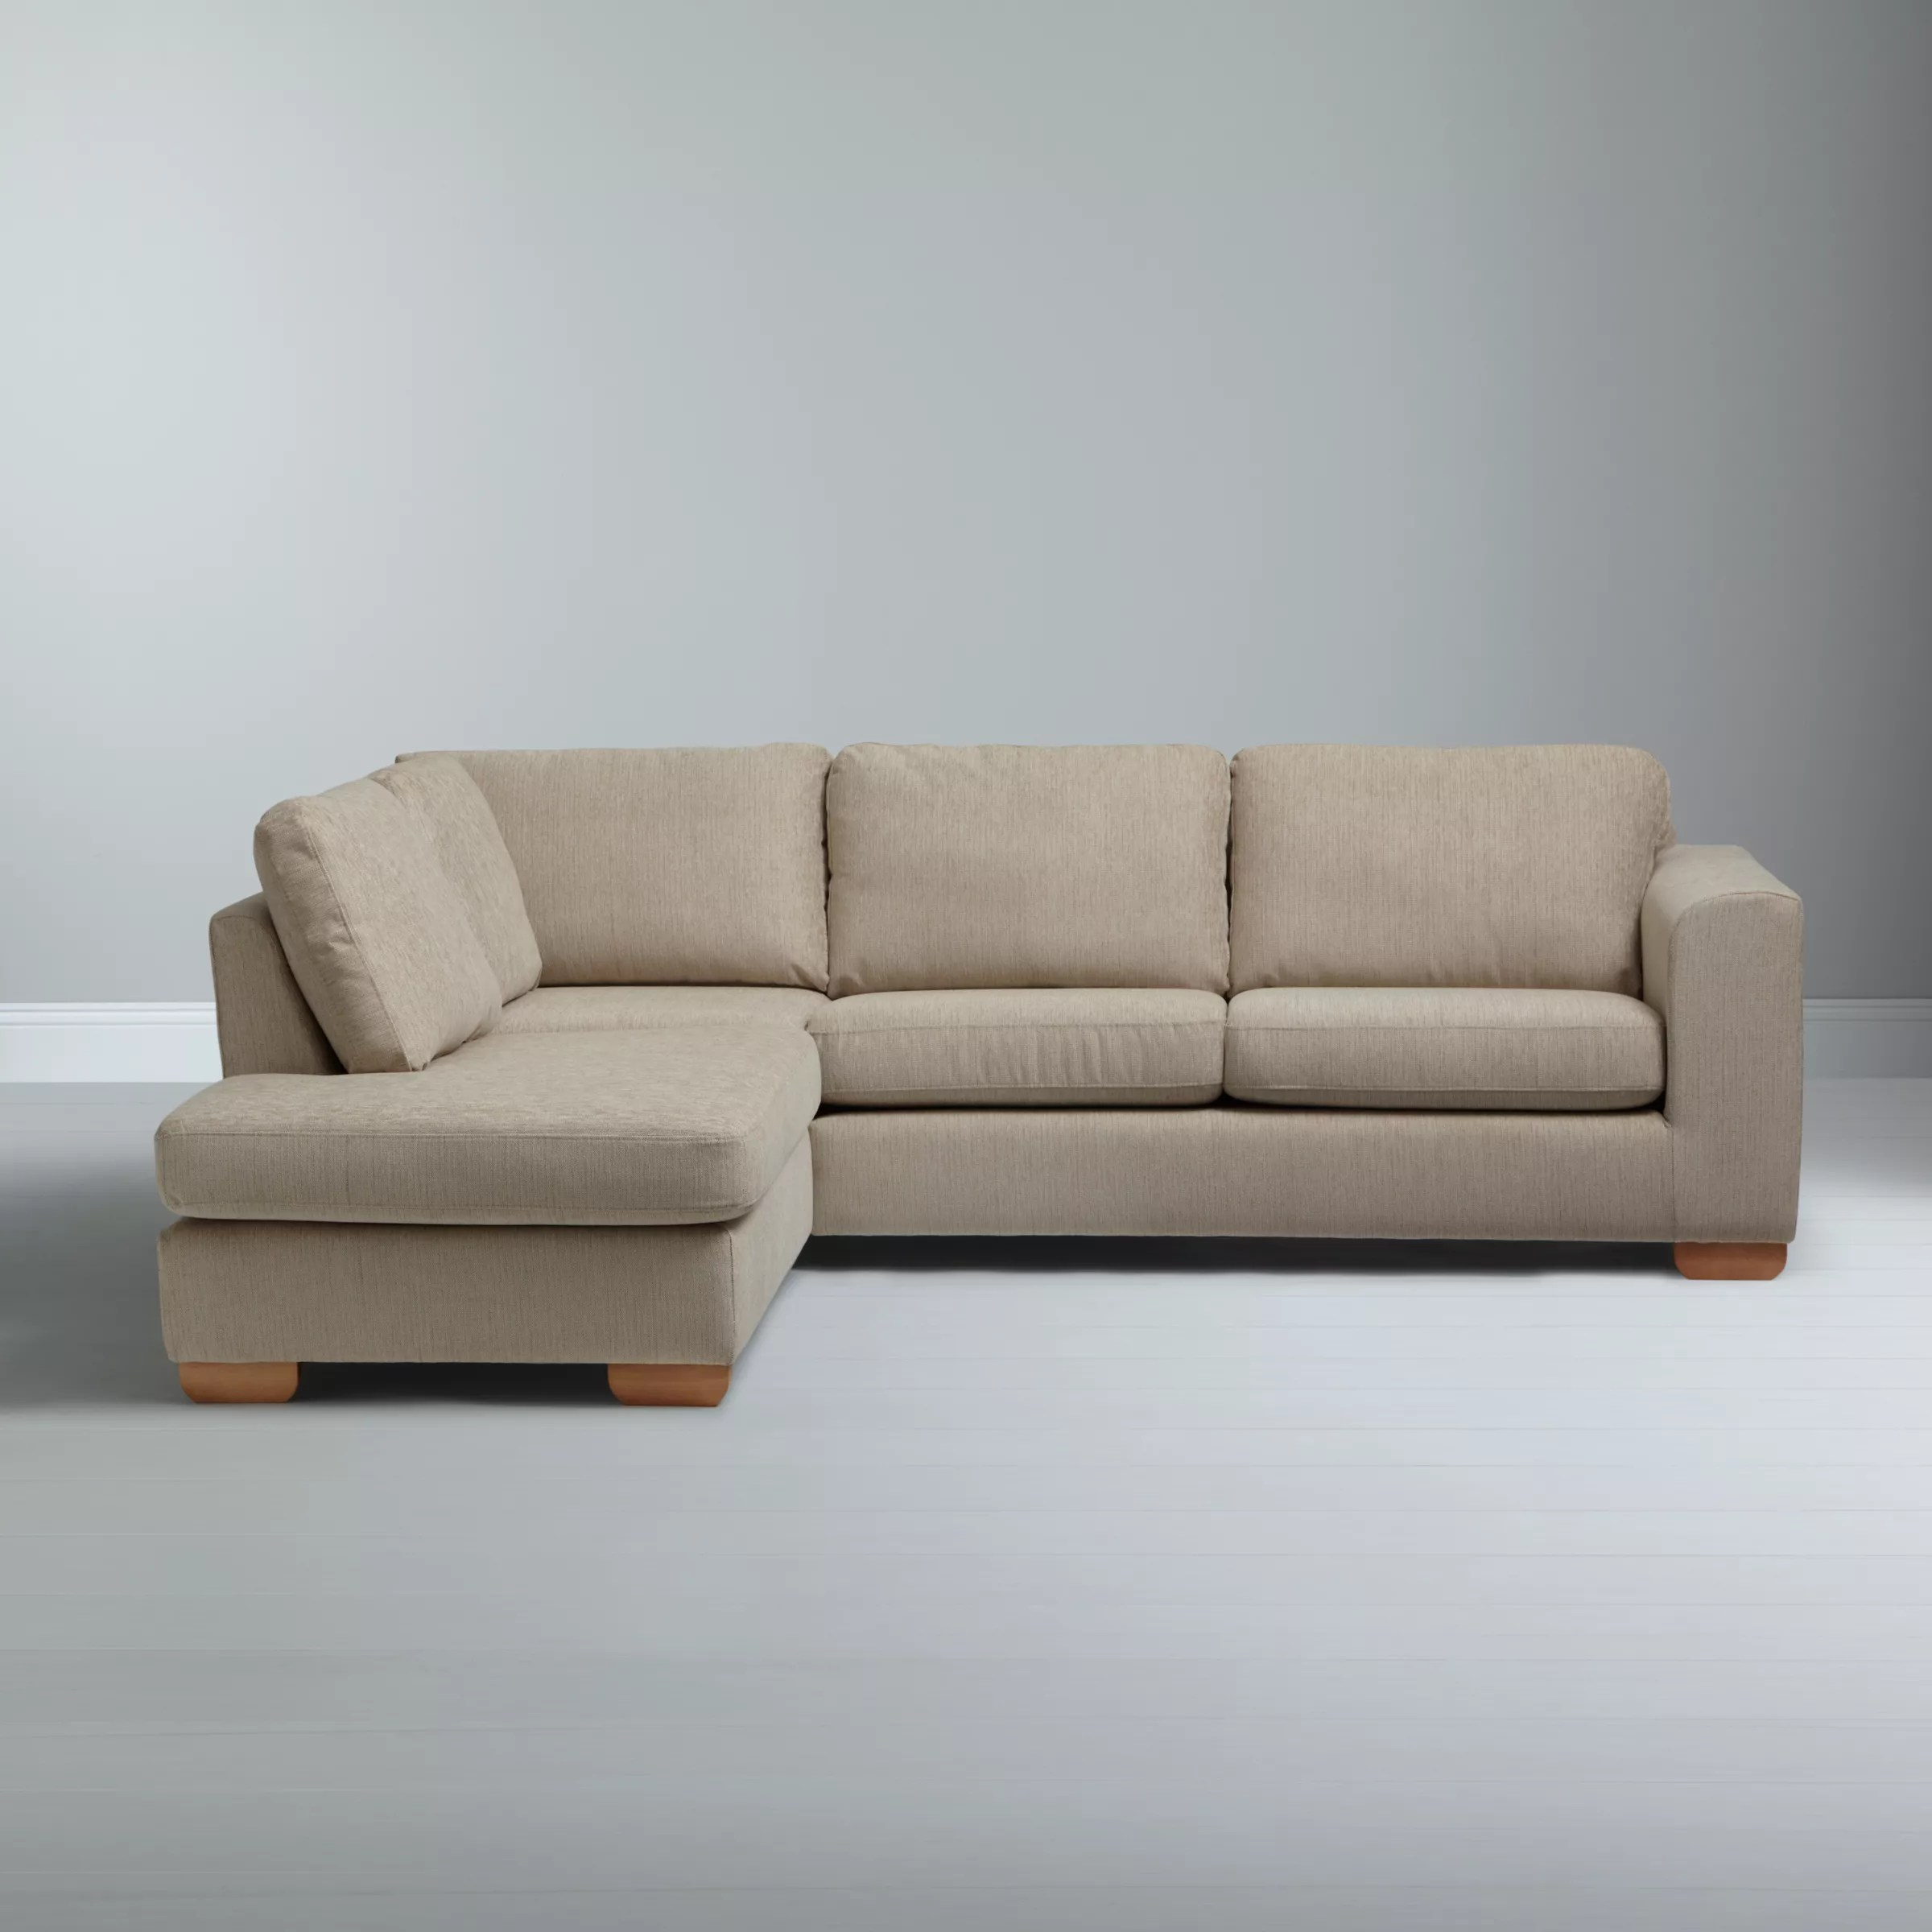 average weight of a large sofa pet bed john lewis felix lhf corner chaise end with light